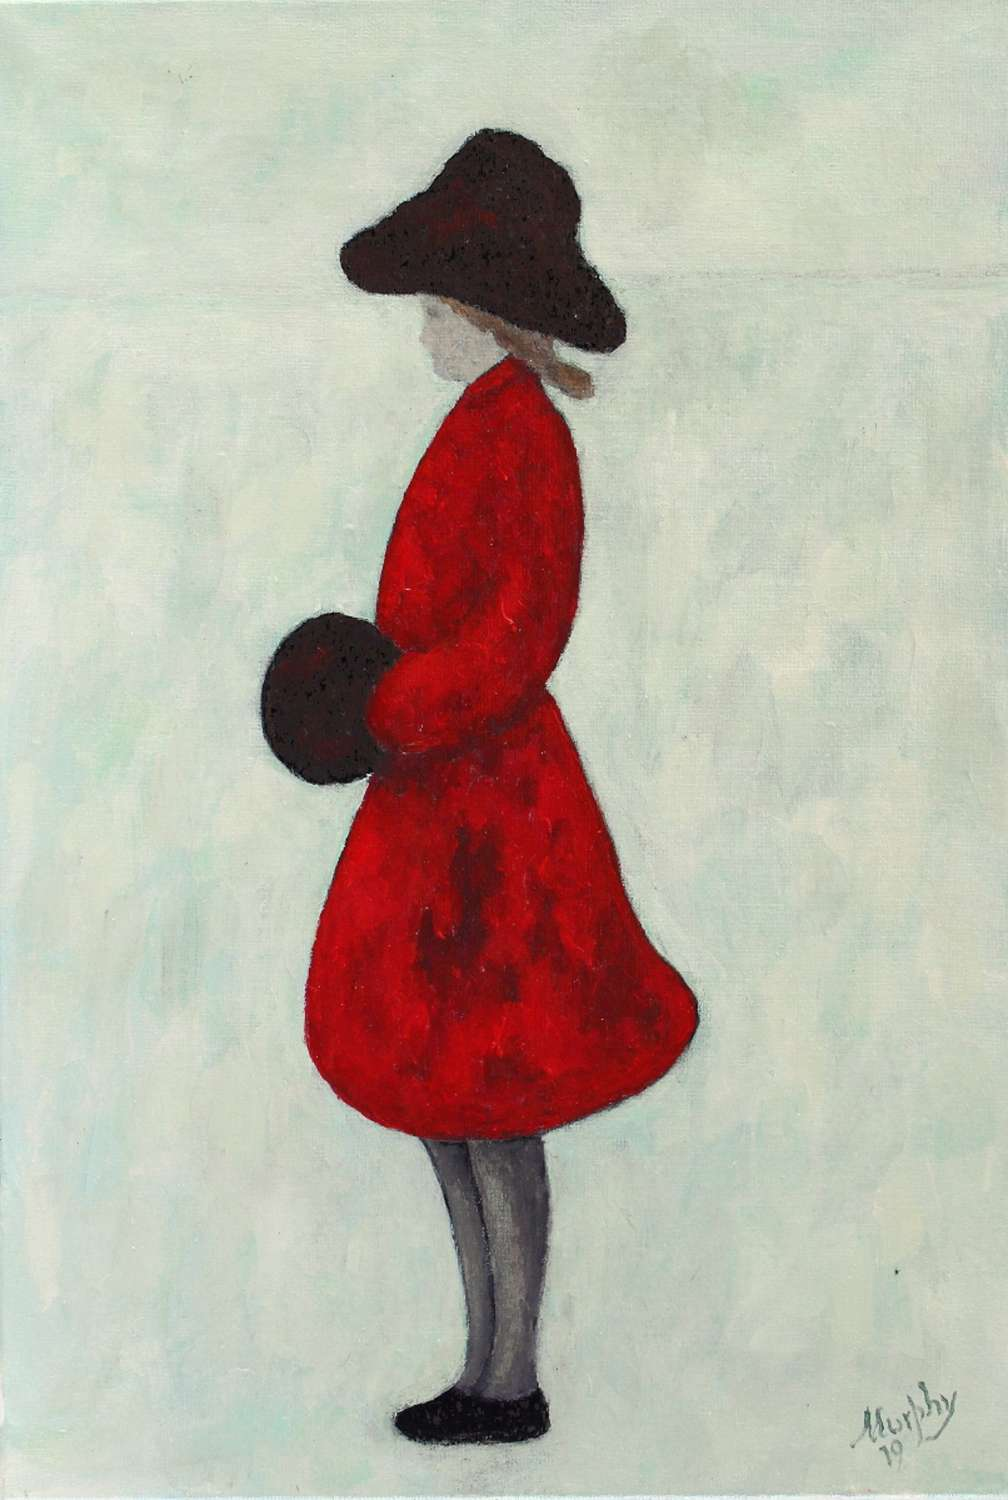 Anthony Murphy. The Red Coat.